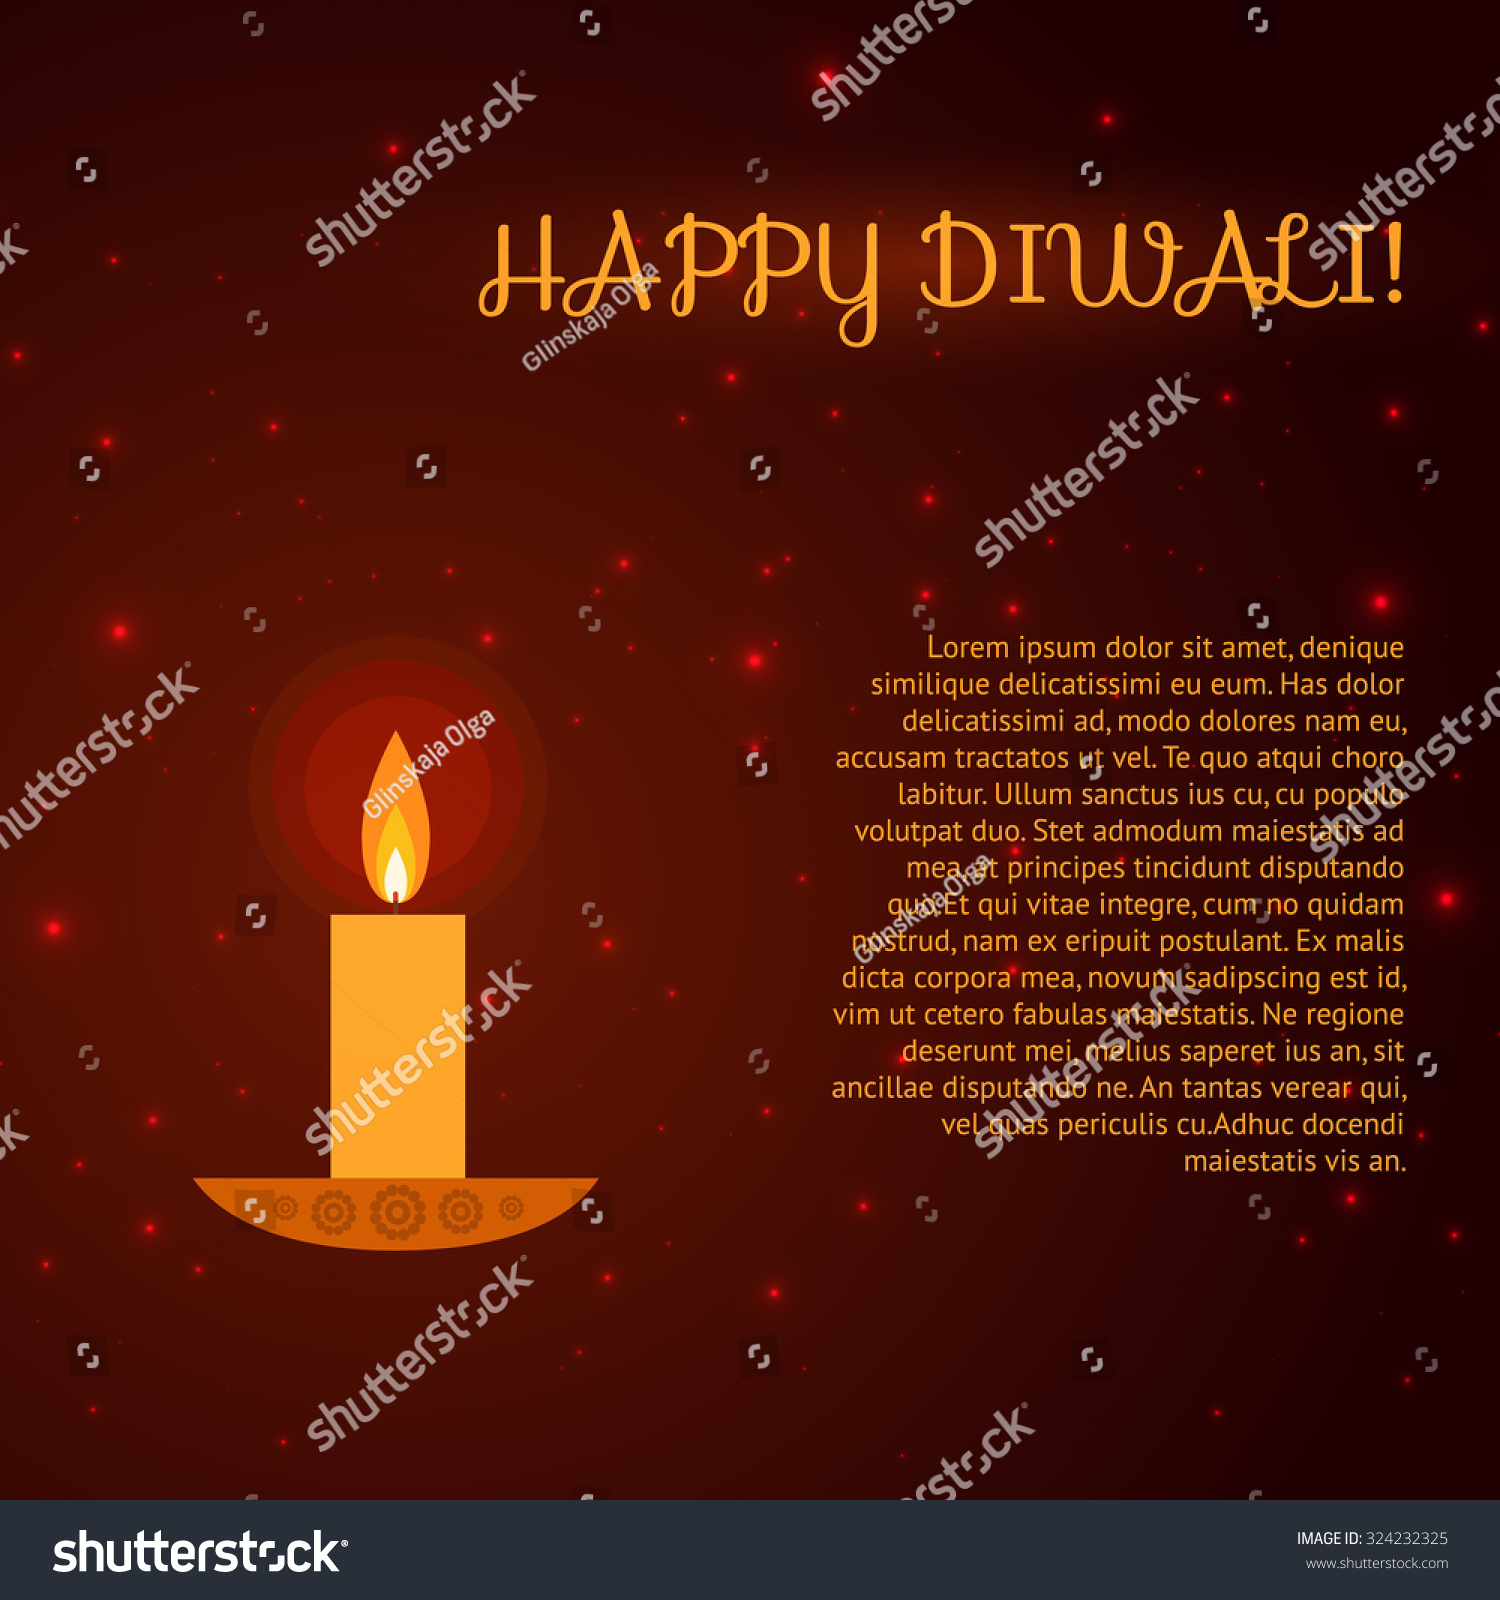 Diwali greeting card colorful background made stock vector diwali greeting card colorful background made in vector kristyandbryce Choice Image